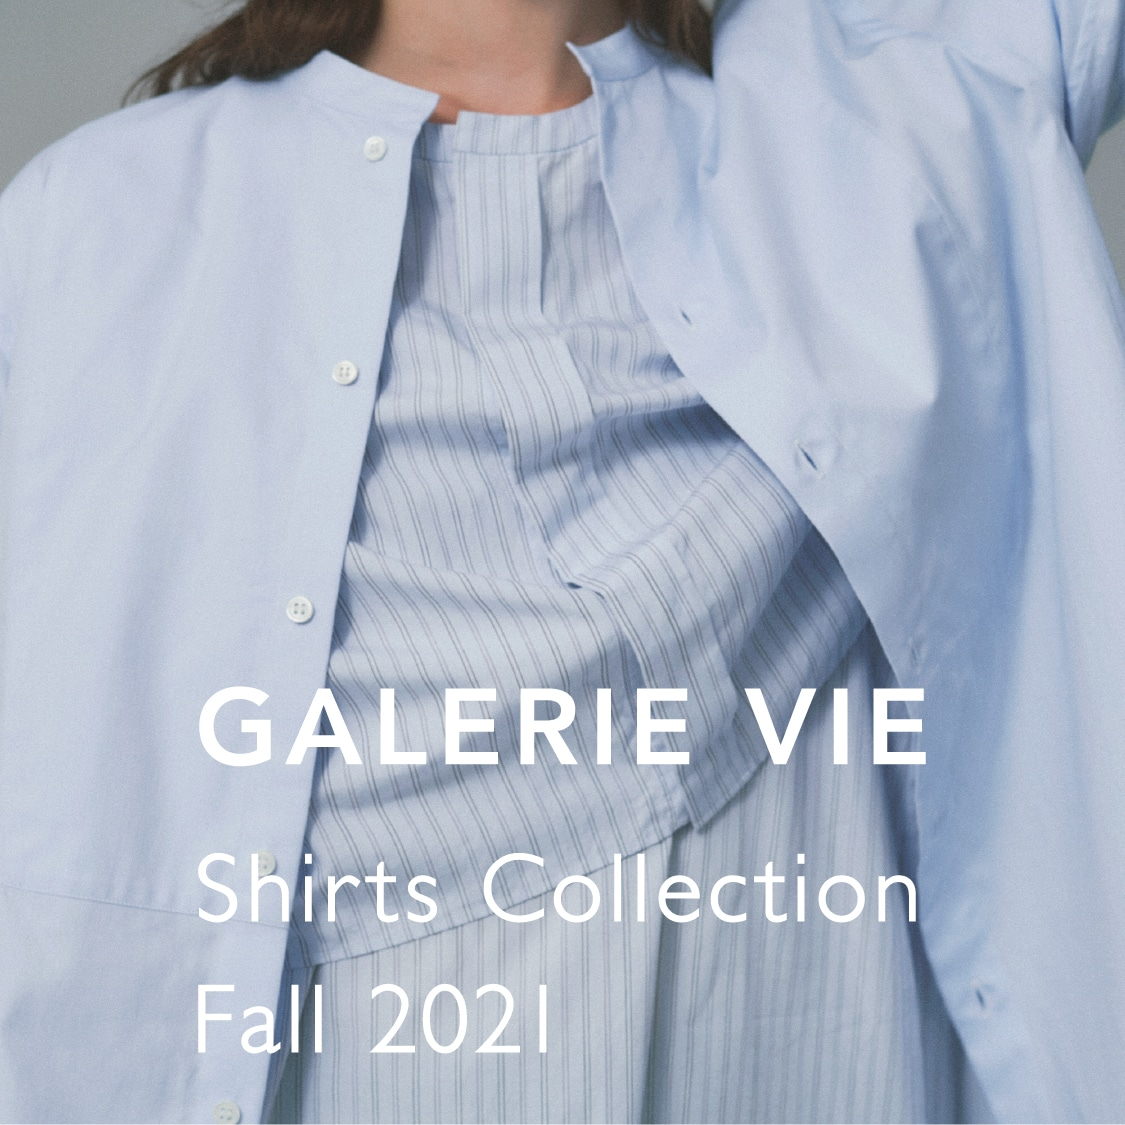 GALERIE VIE Shirts Collection Fall 2021